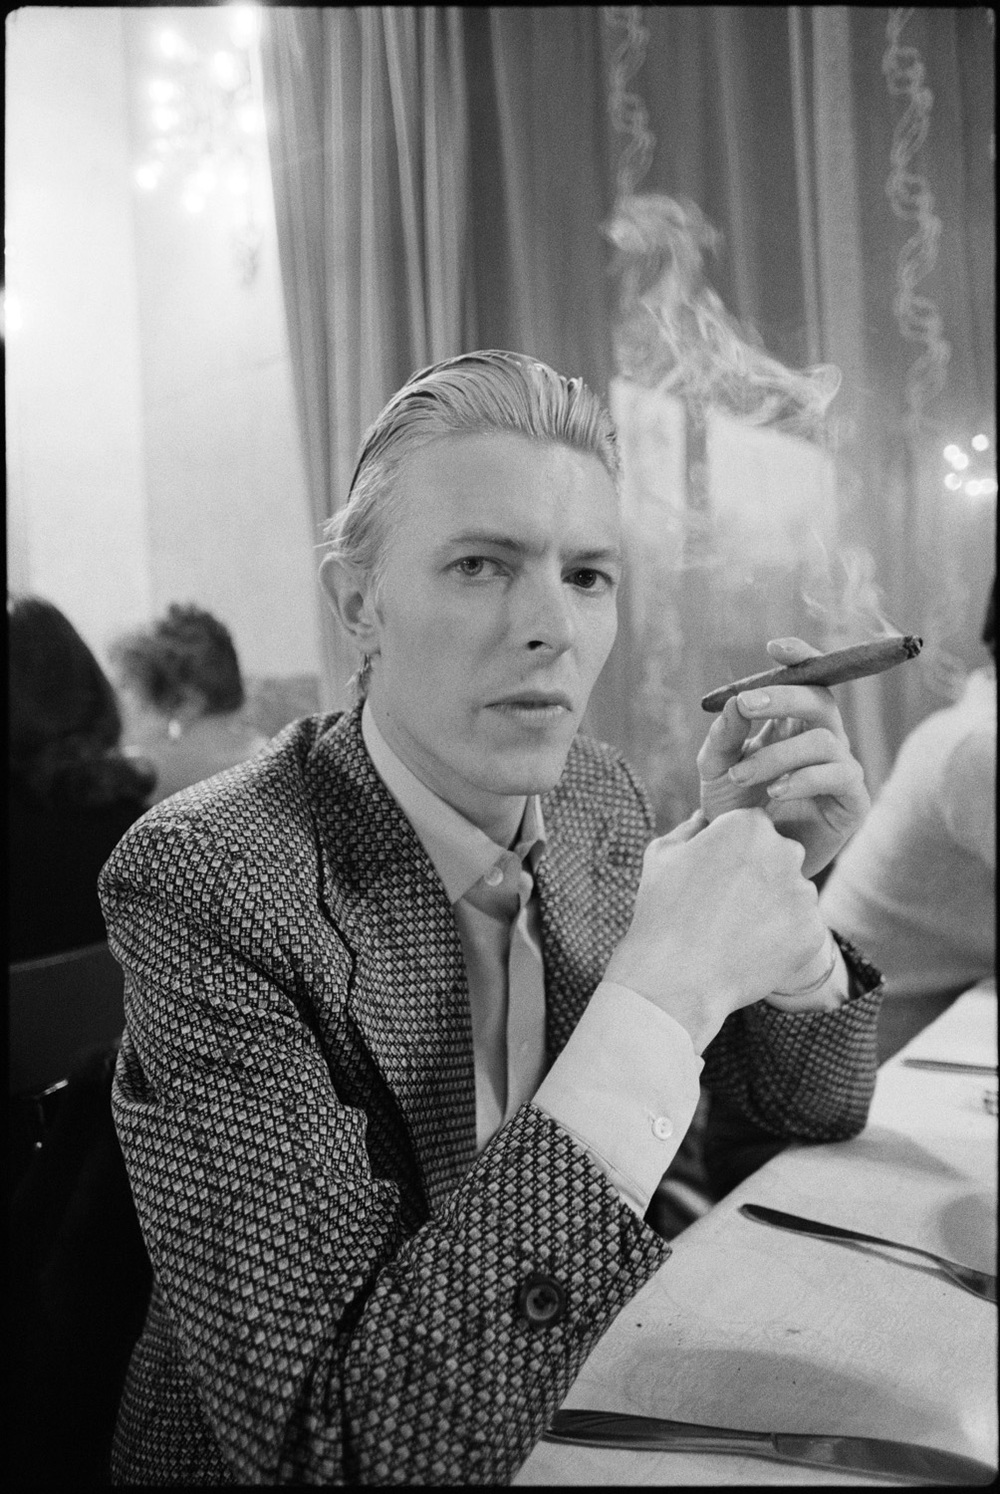 David Bowie smoking a cigar at a table at the Metropole Hotel in Moscow 1976